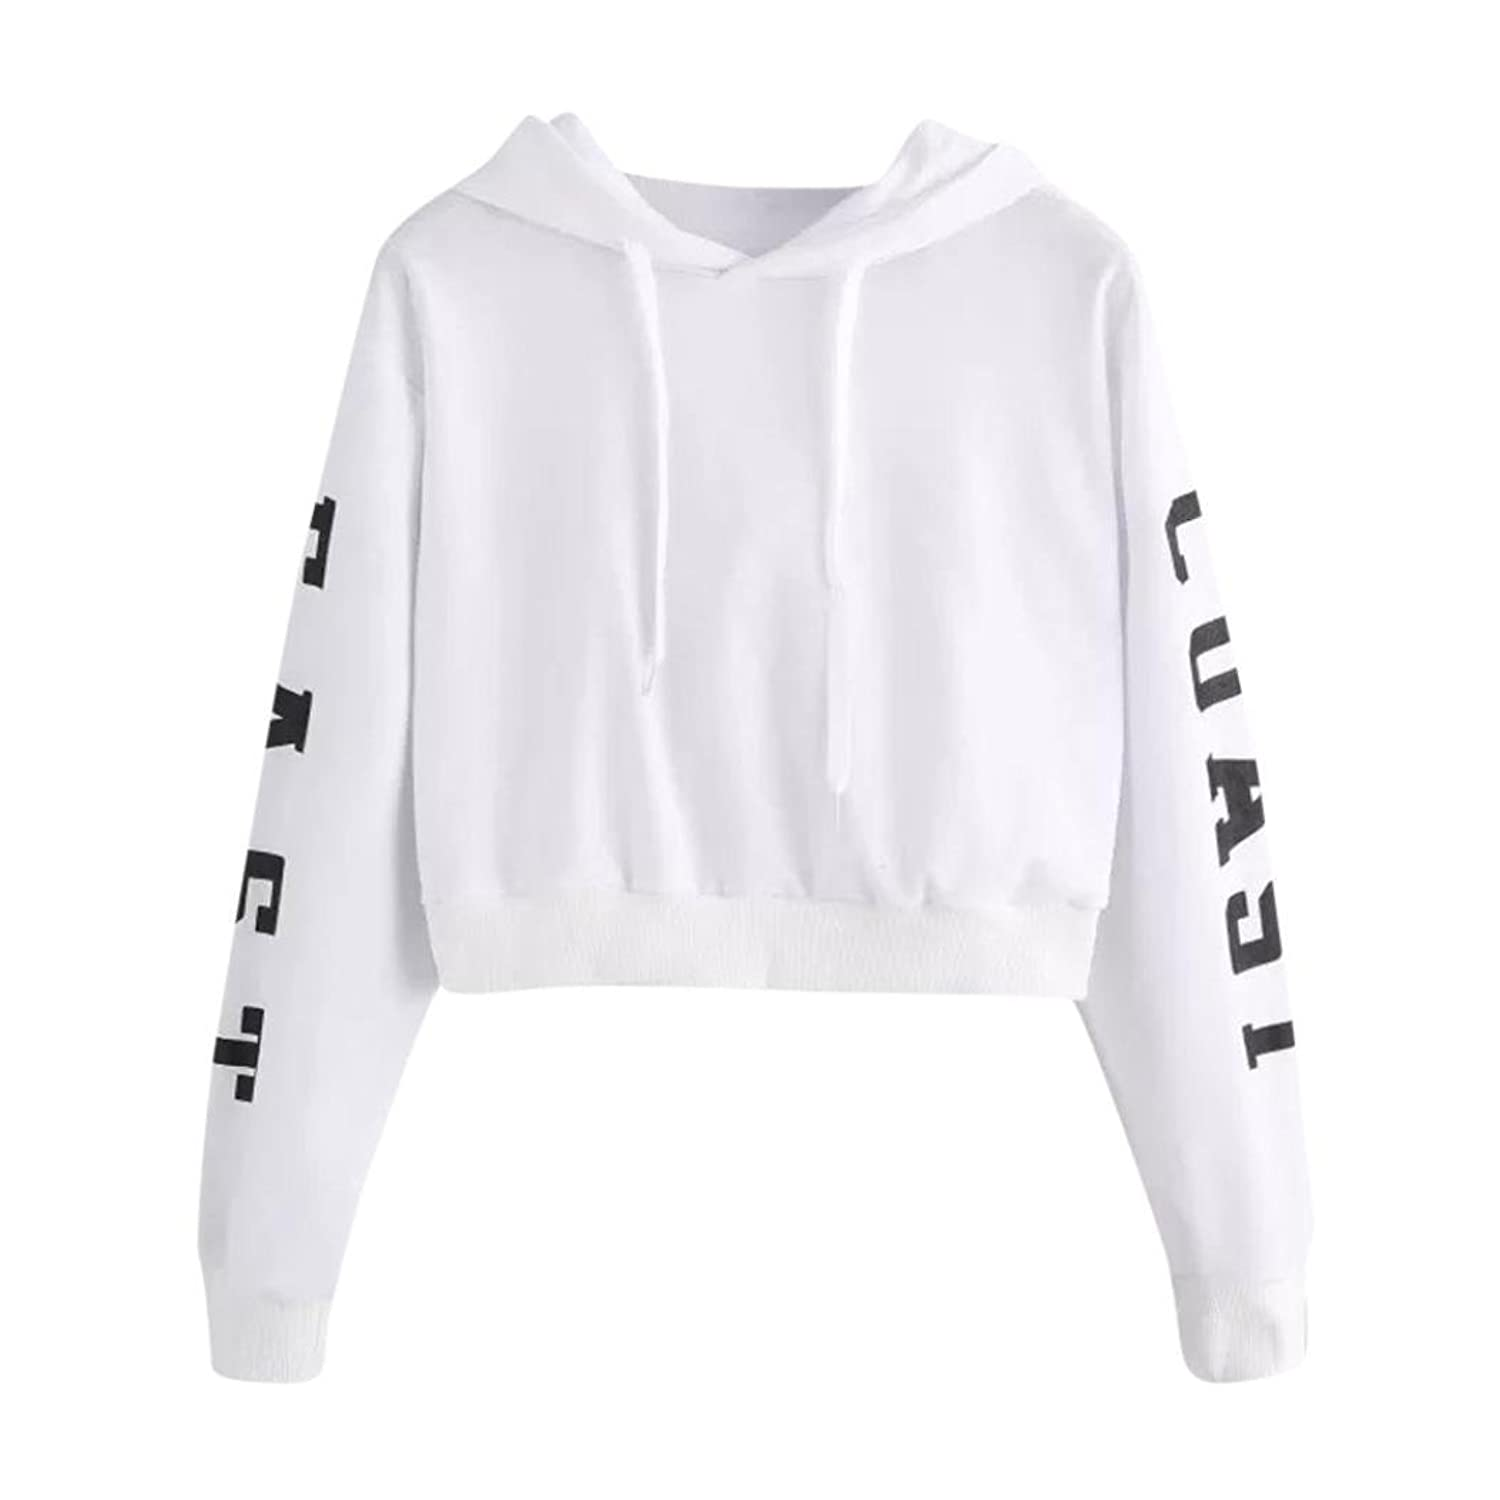 05adc0c7b Top15: Zainafacai Women\'s Letter Printed Drawstring Long Sleeve Hoodie  Crop Top Sweatshirt